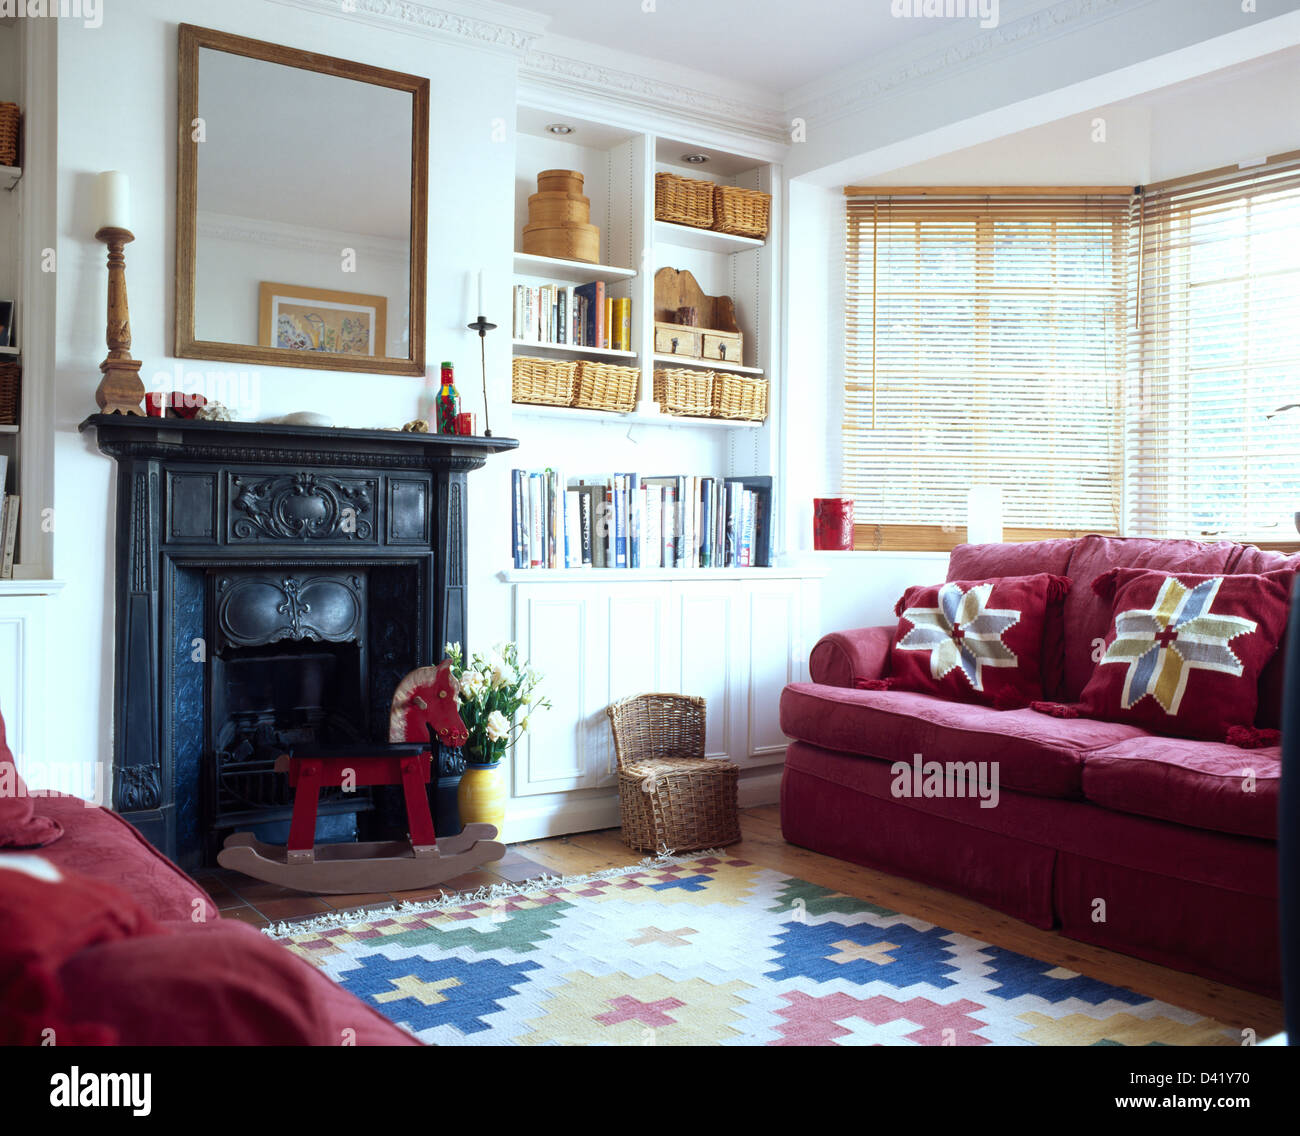 Red Sofas On Either Side Of Black Cast Iron Edwardian Fireplace In Sitting Room With Kelim